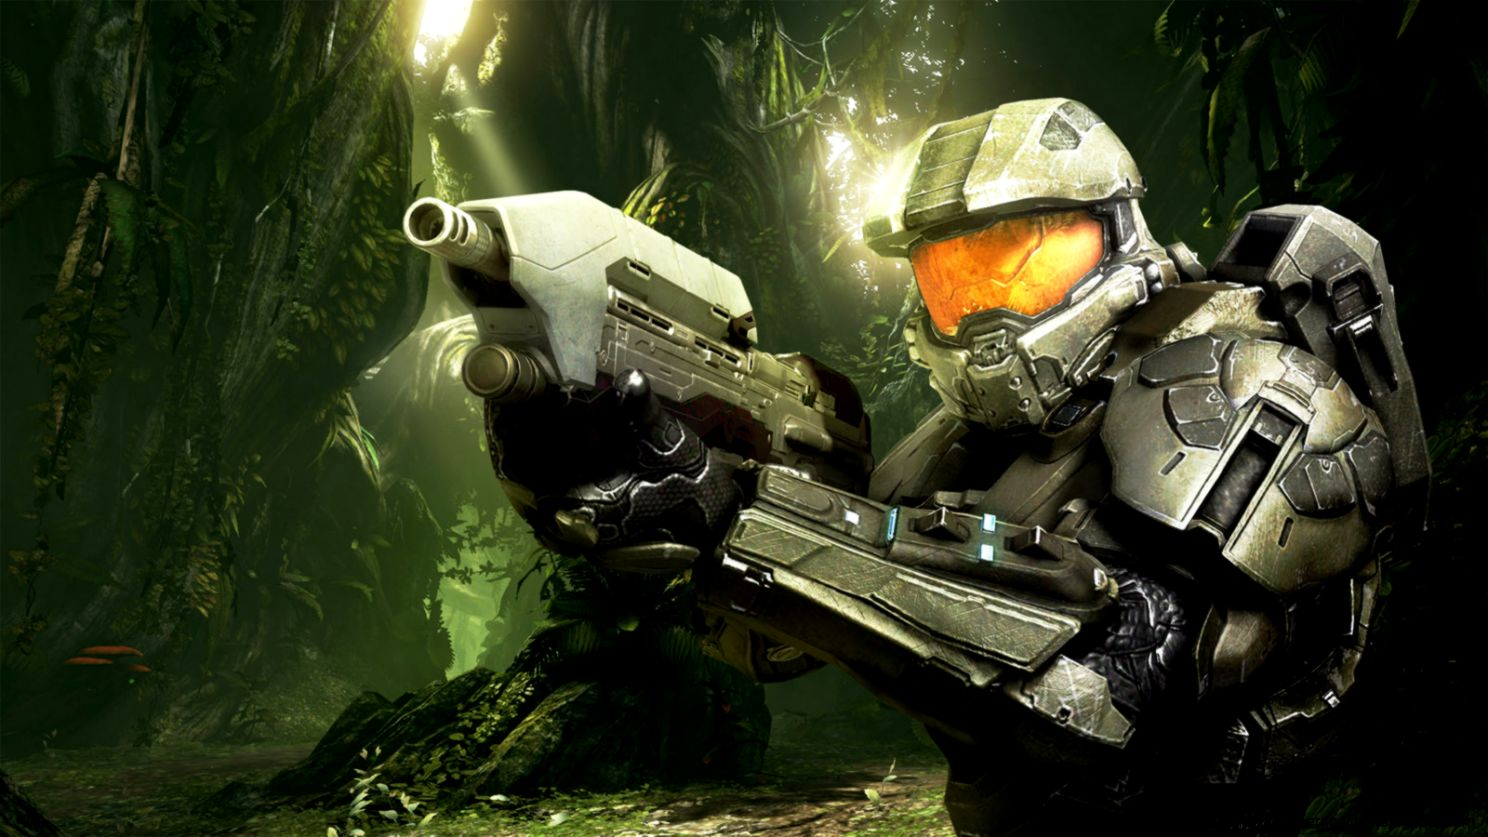 Halo 4 Master Chief Wallpaper Full Hd Wallpapers